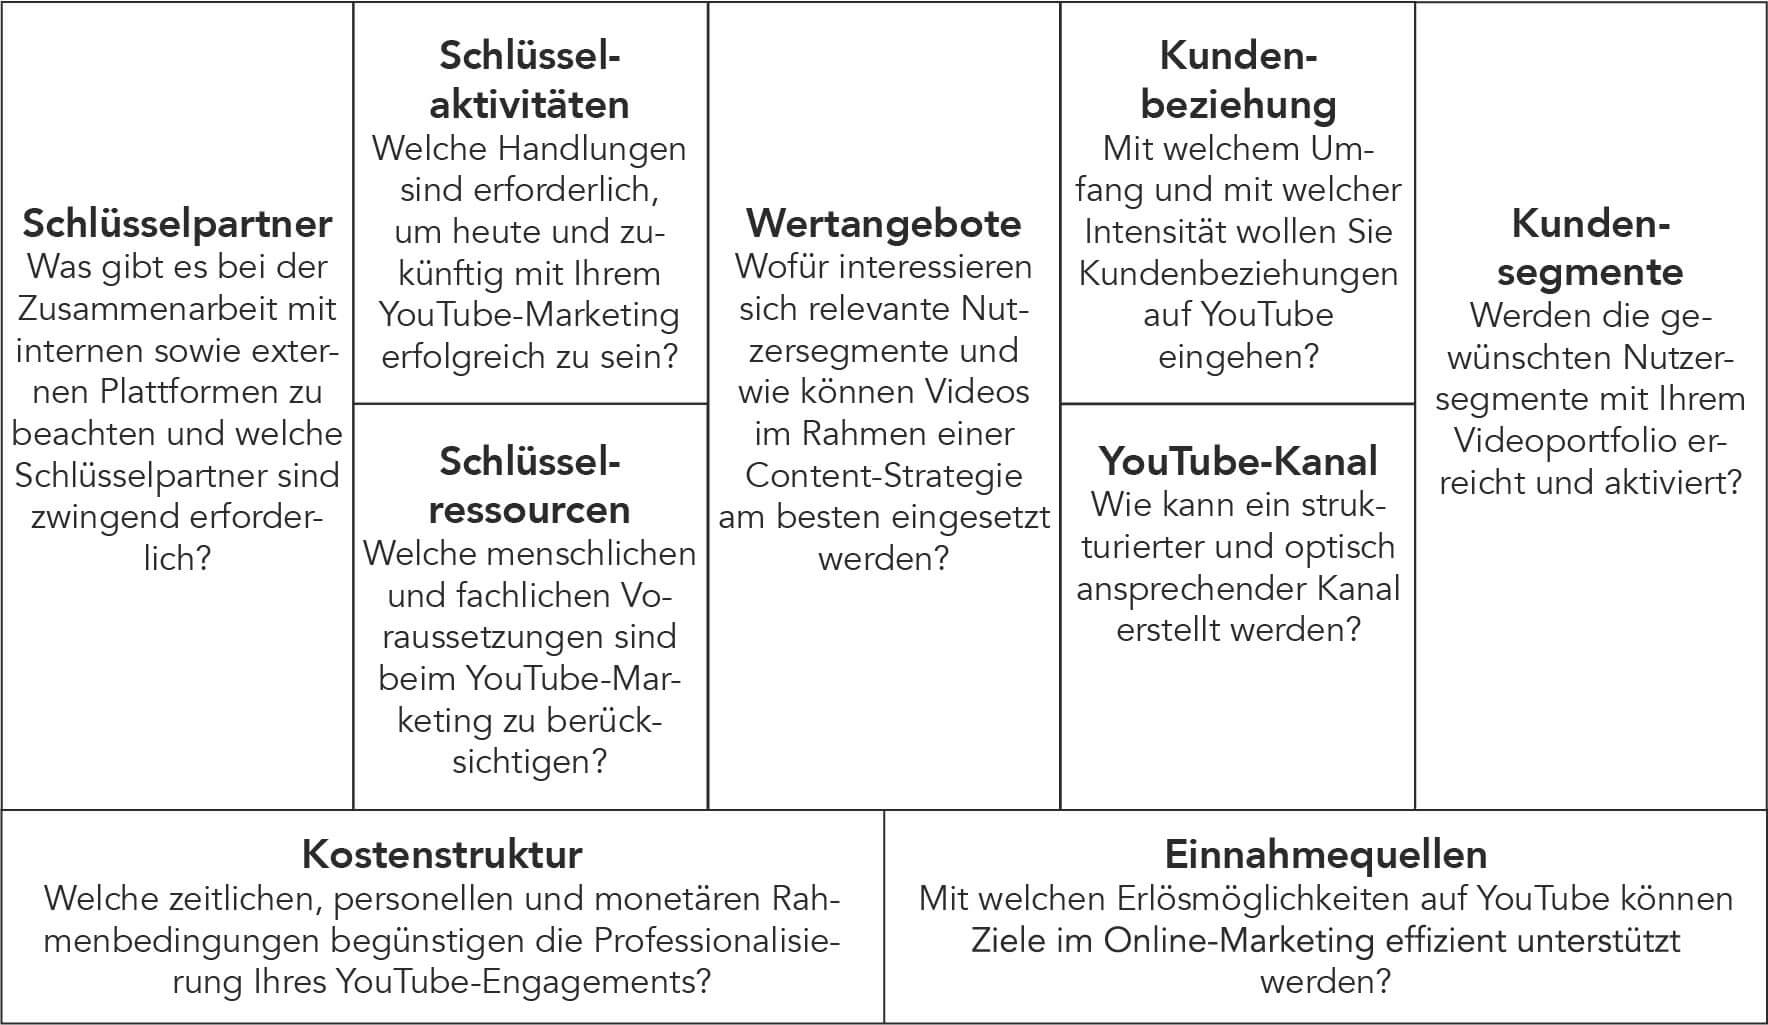 Das Business Model Canvas für eine YouTube-Strategie nach C. Seehaus